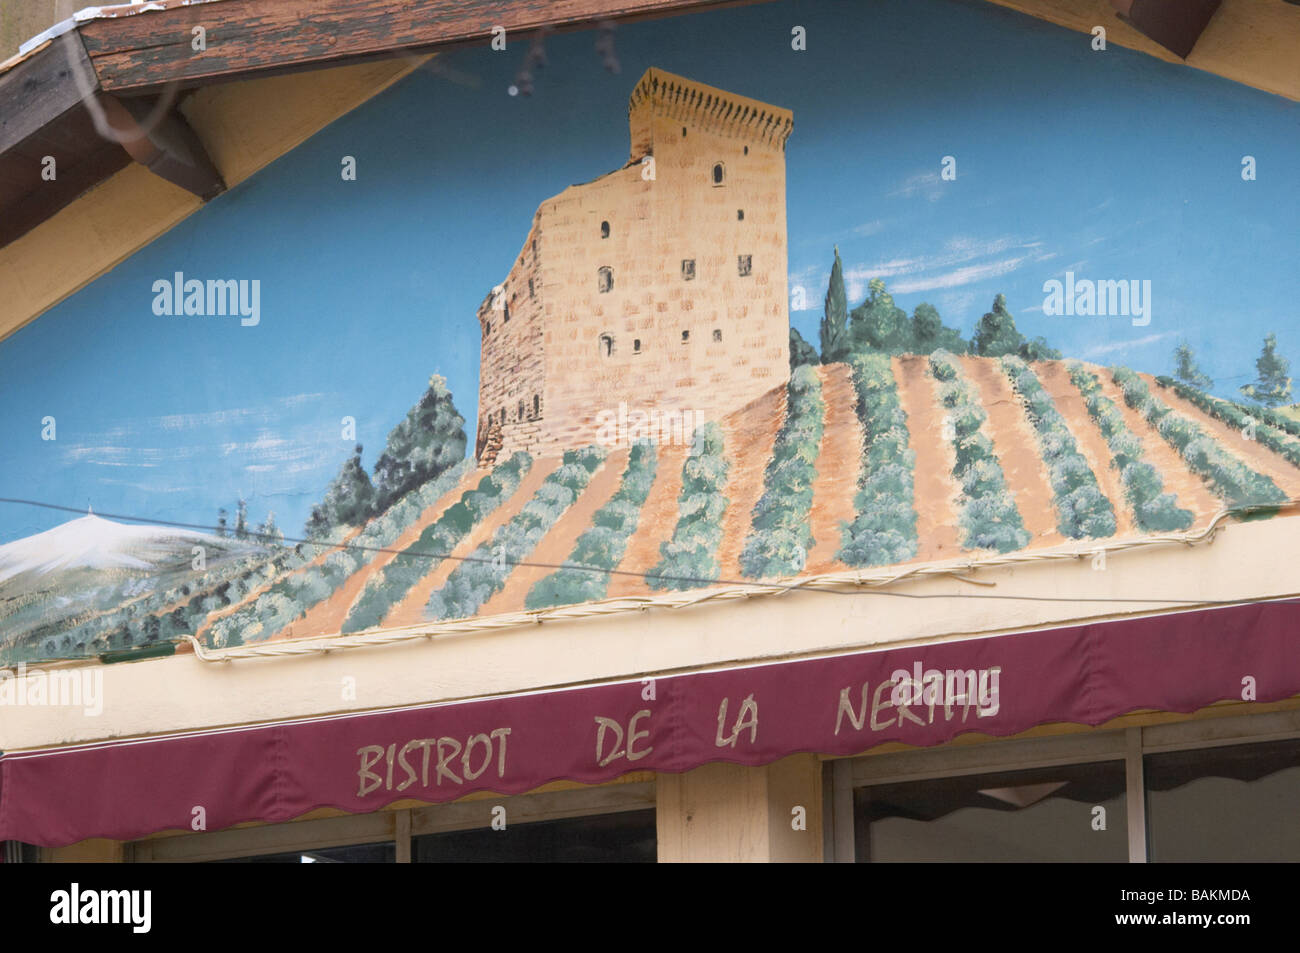 bistrot de la nerthe on the town square chateauneuf du pape rhone france - Stock Image